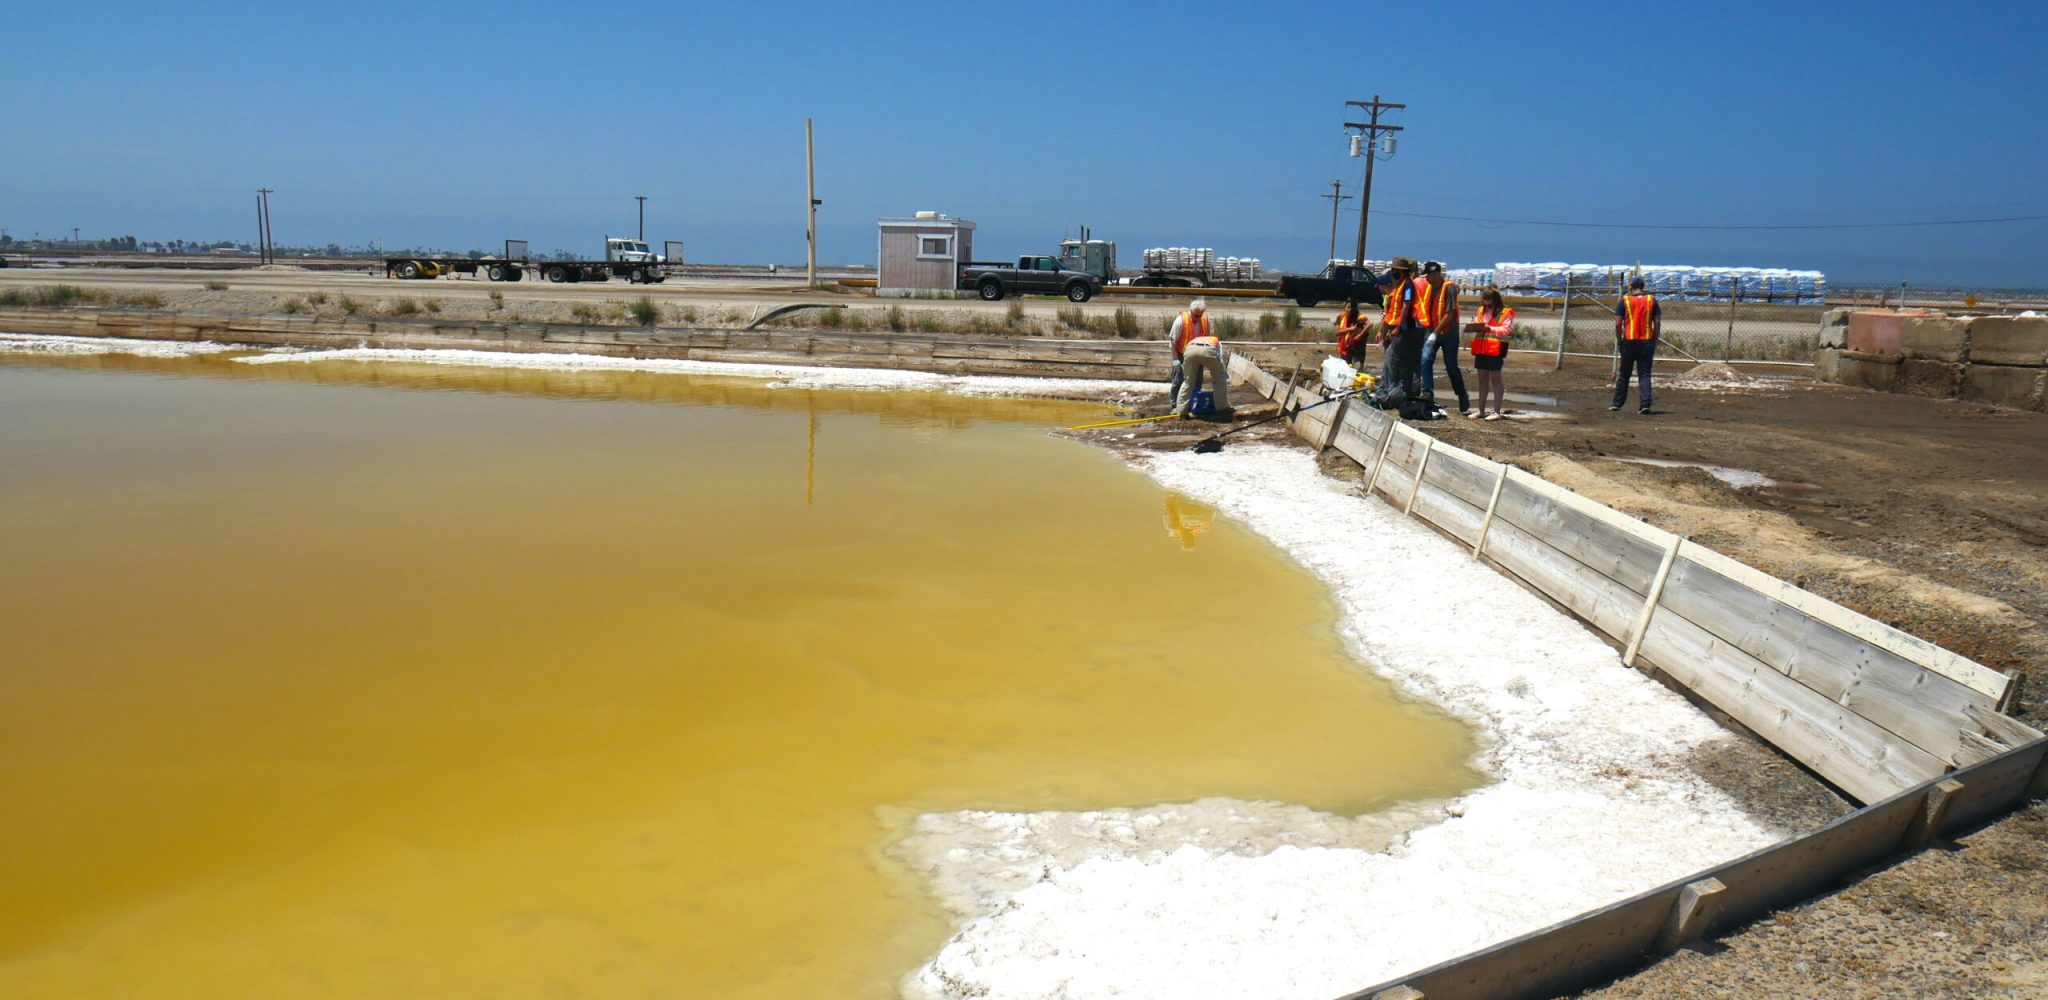 Photo of a yellow-brown magnesium chloride evaporation pool at South Bay Salt Works SBSW during 2019 OAST field work.